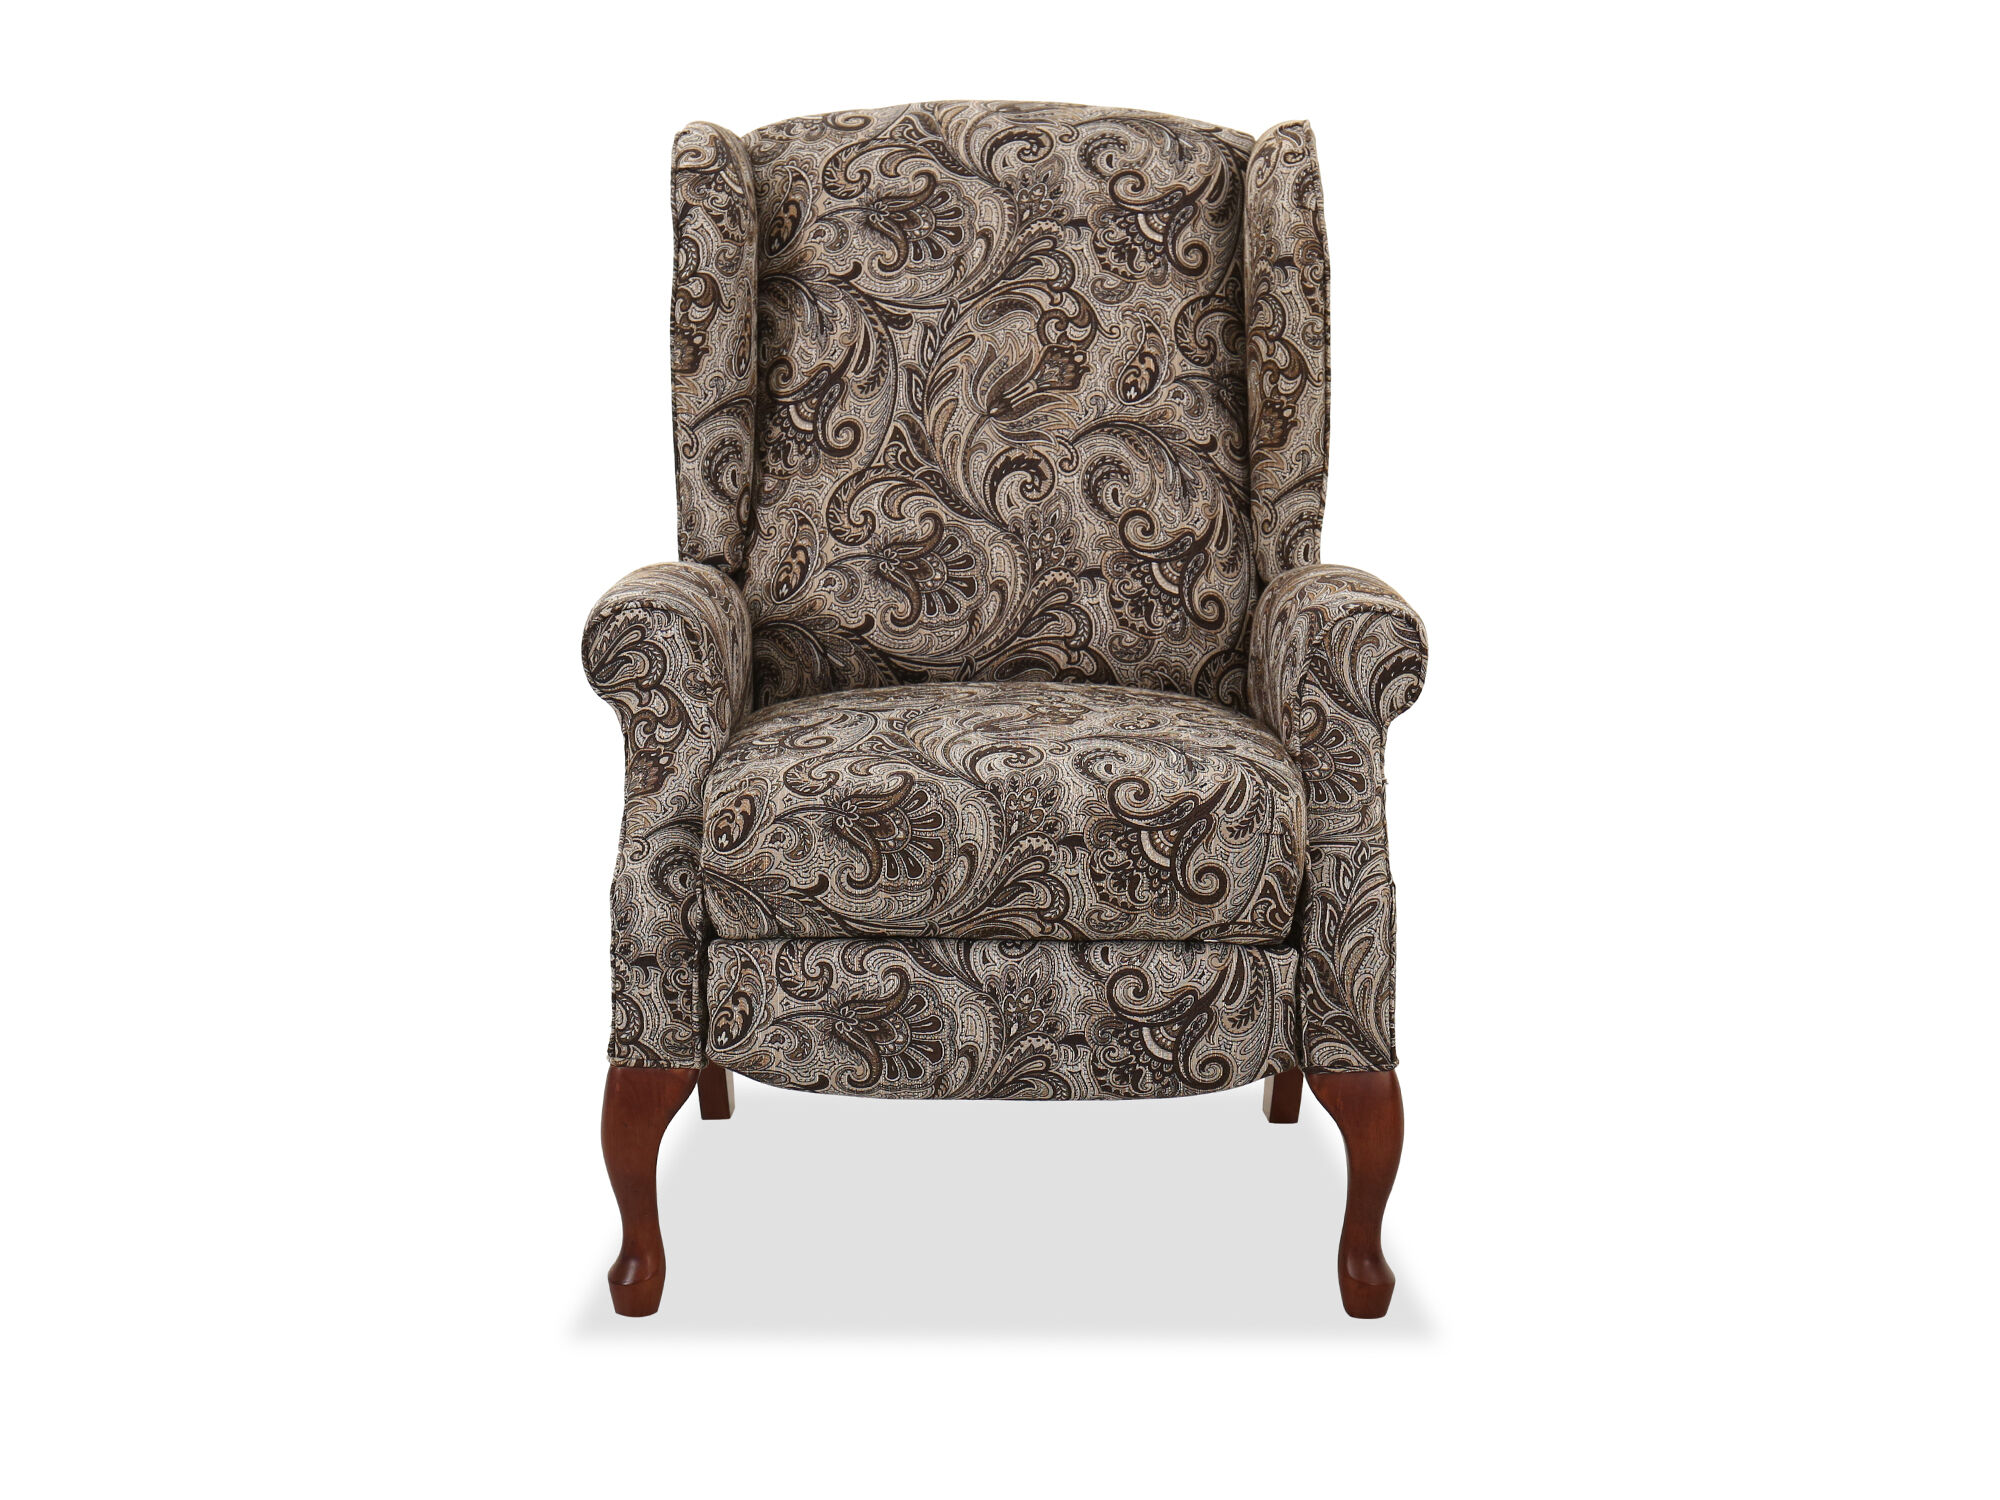 recliner chairs cheap clear kitchen recliners reclining sofas mathis brothers contemporary floral paisley patterned 30 quot high leg